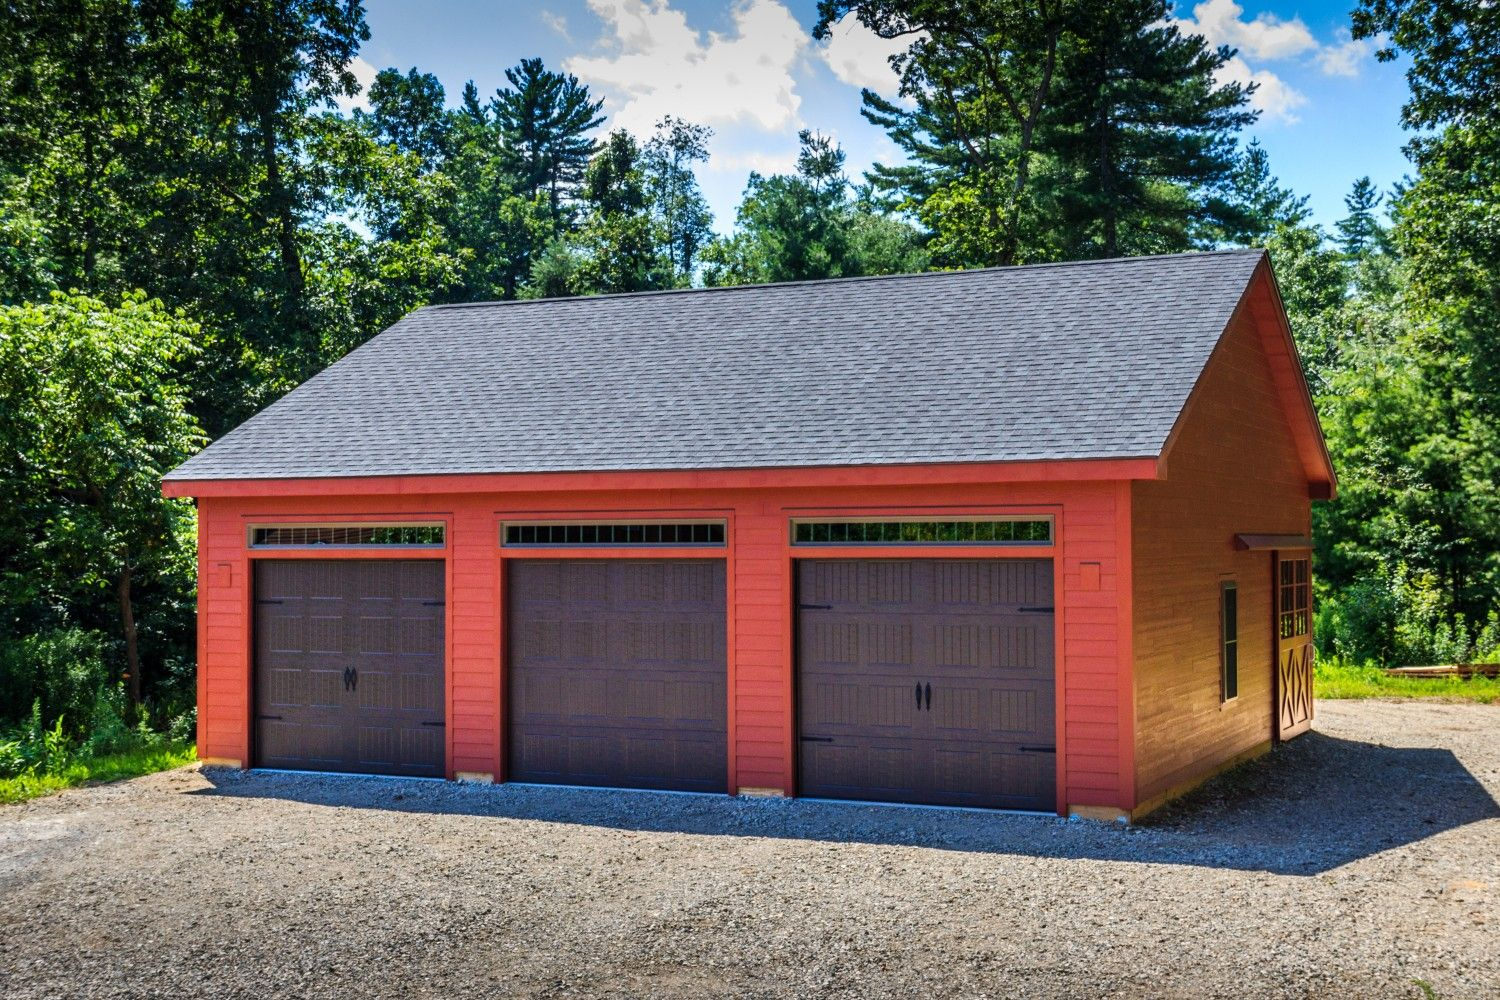 Roosevelt A Frame Style One Story Garage The Barn Yard Great Country Garages Garage Workshop Plans Garage Style Single Garage Door